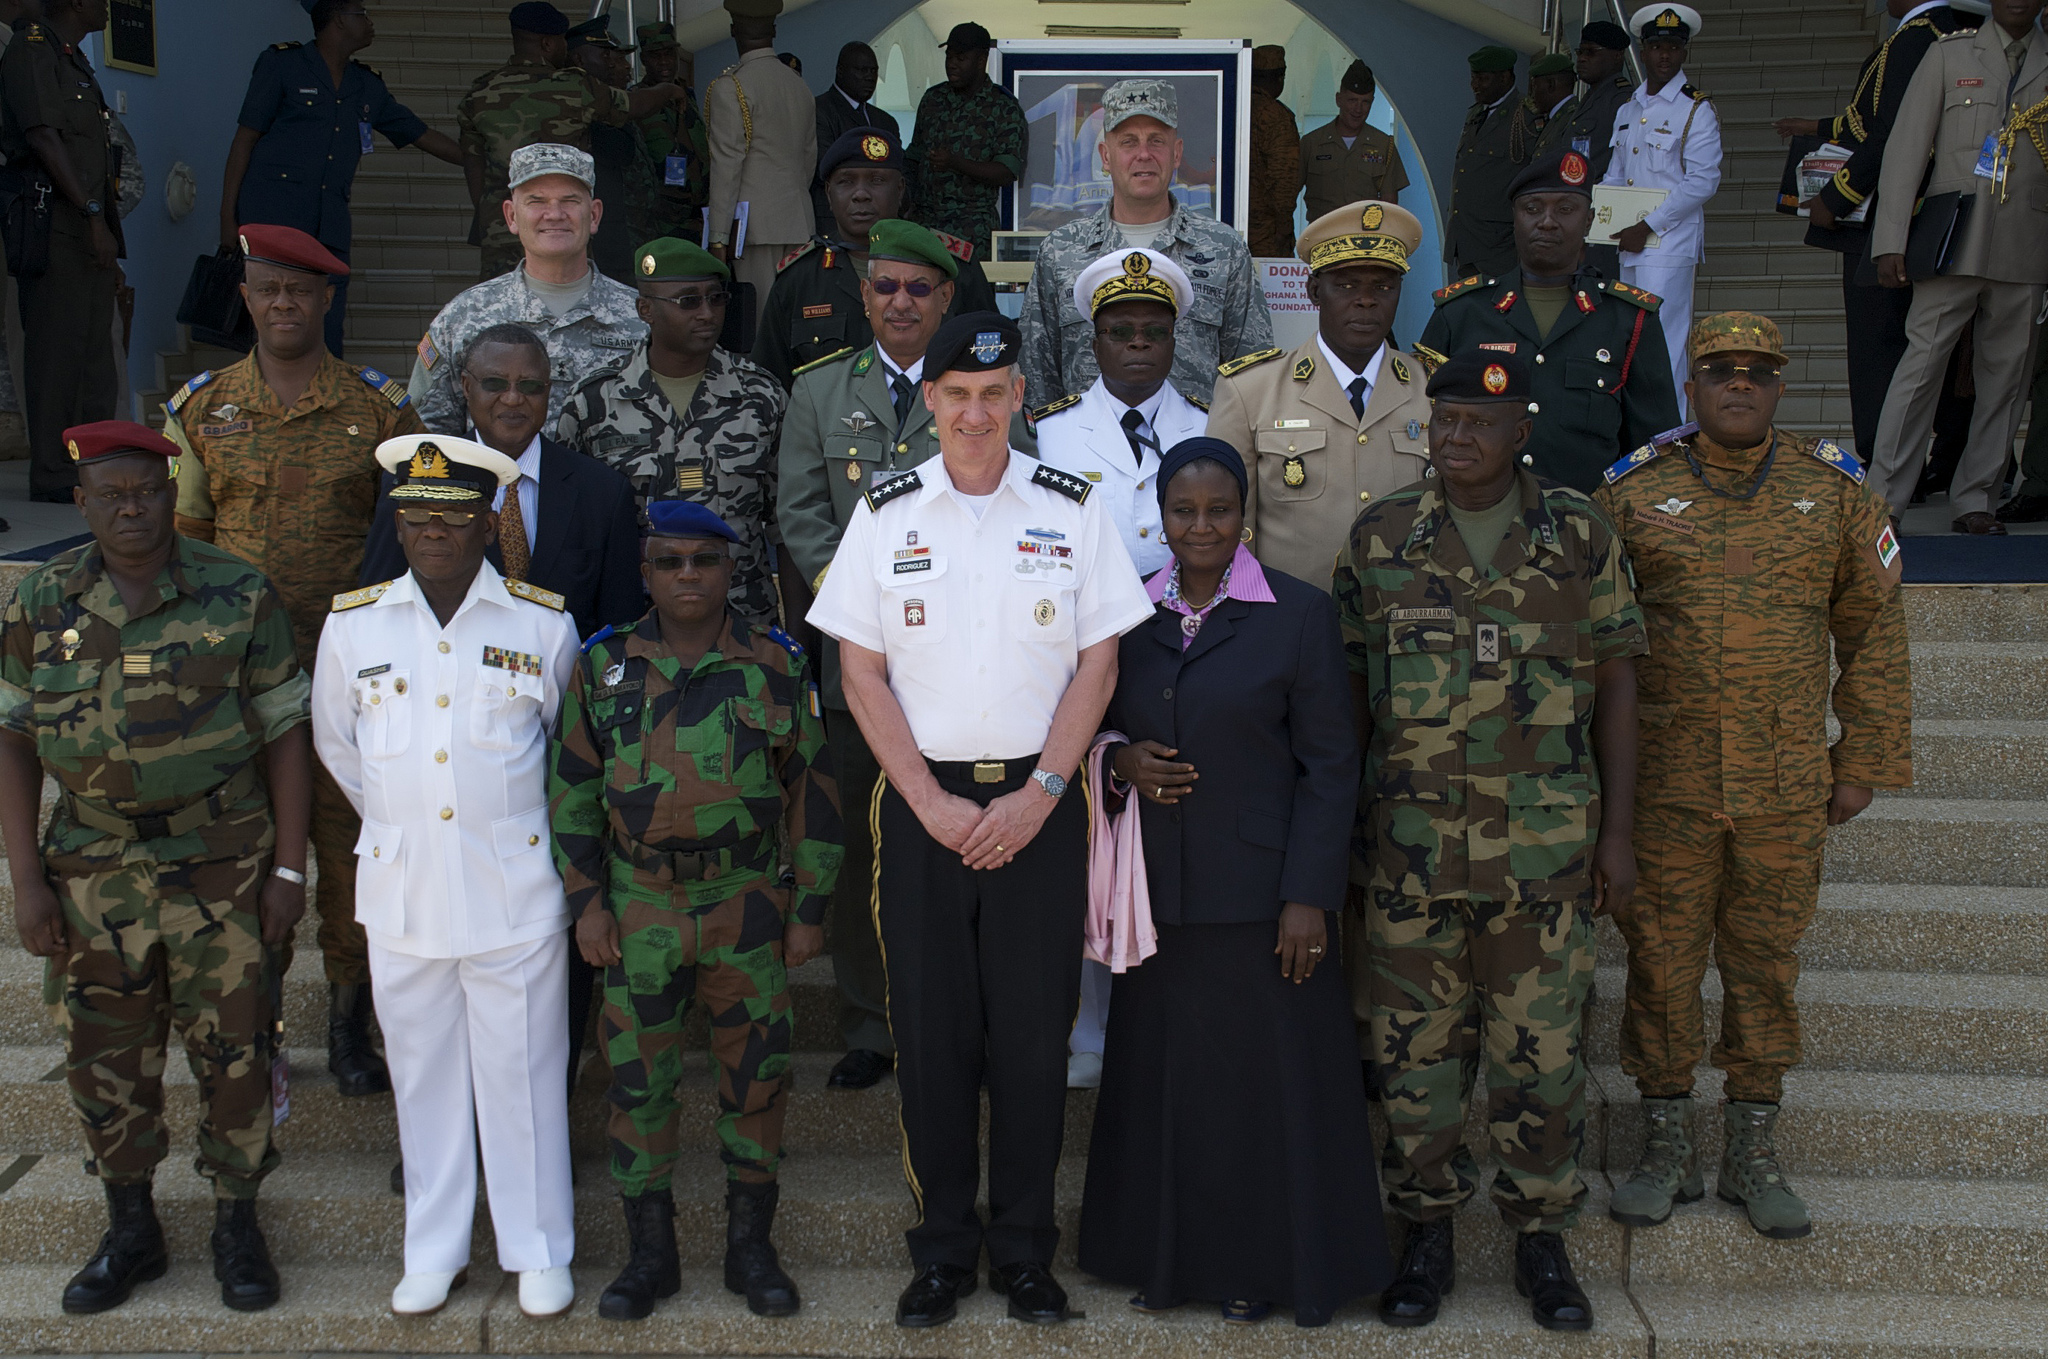 U.S. Army Gen. David Rodriguez, front row, center, the commander of U.S. Africa Command, poses for a photo with military leaders participating in exercise Western Accord 2013 in Accra, Ghana, June 26, 2013